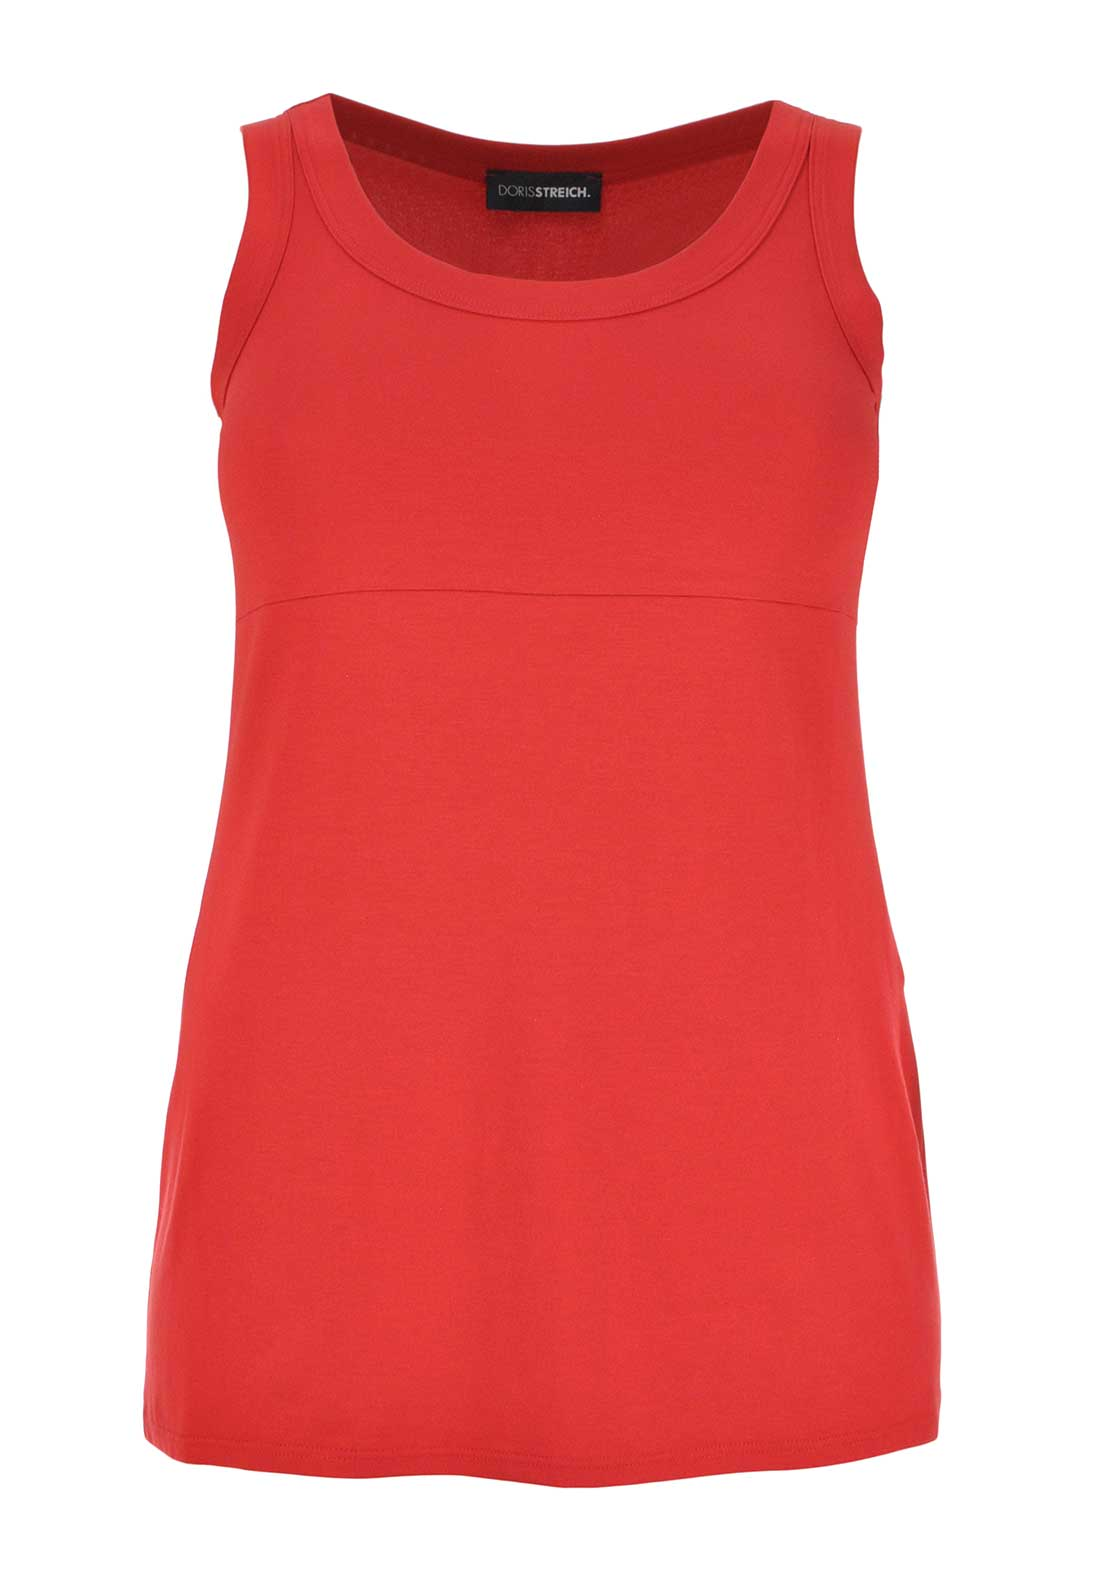 Doris Streich Sleeveless Vest Top, Red